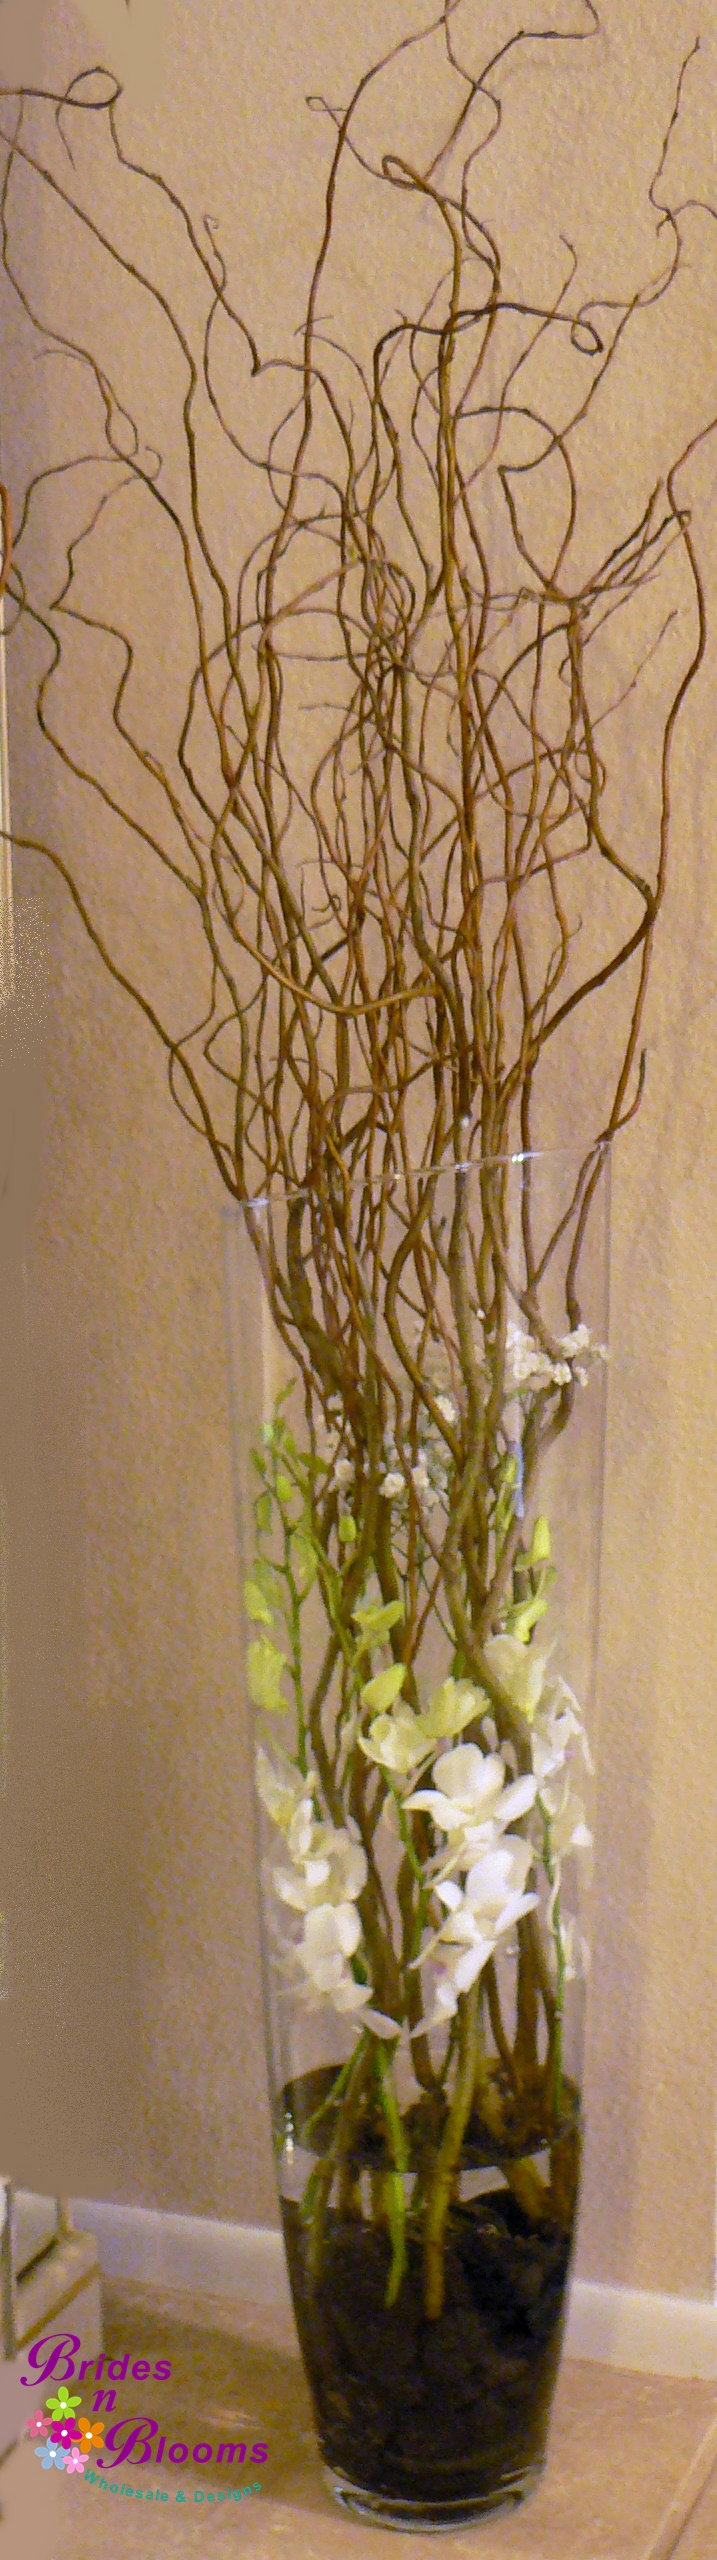 Brides N Blooms, Wholesale & Designs, Super Tall Curly Willow, Orchid & Babies Breath Accent - Ceremony Decor